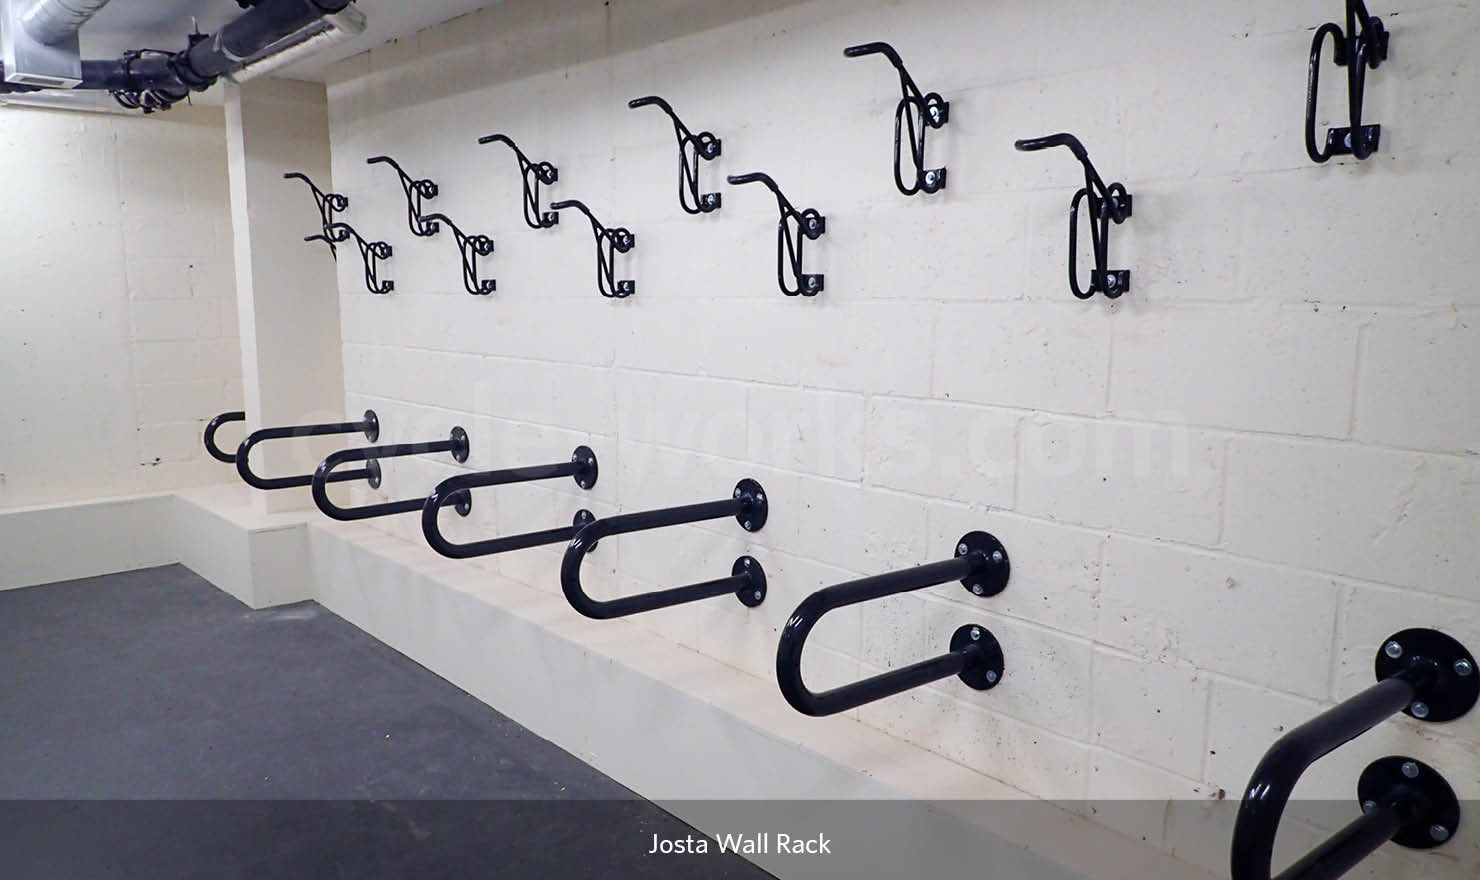 Josta Wall Rack for Cycles